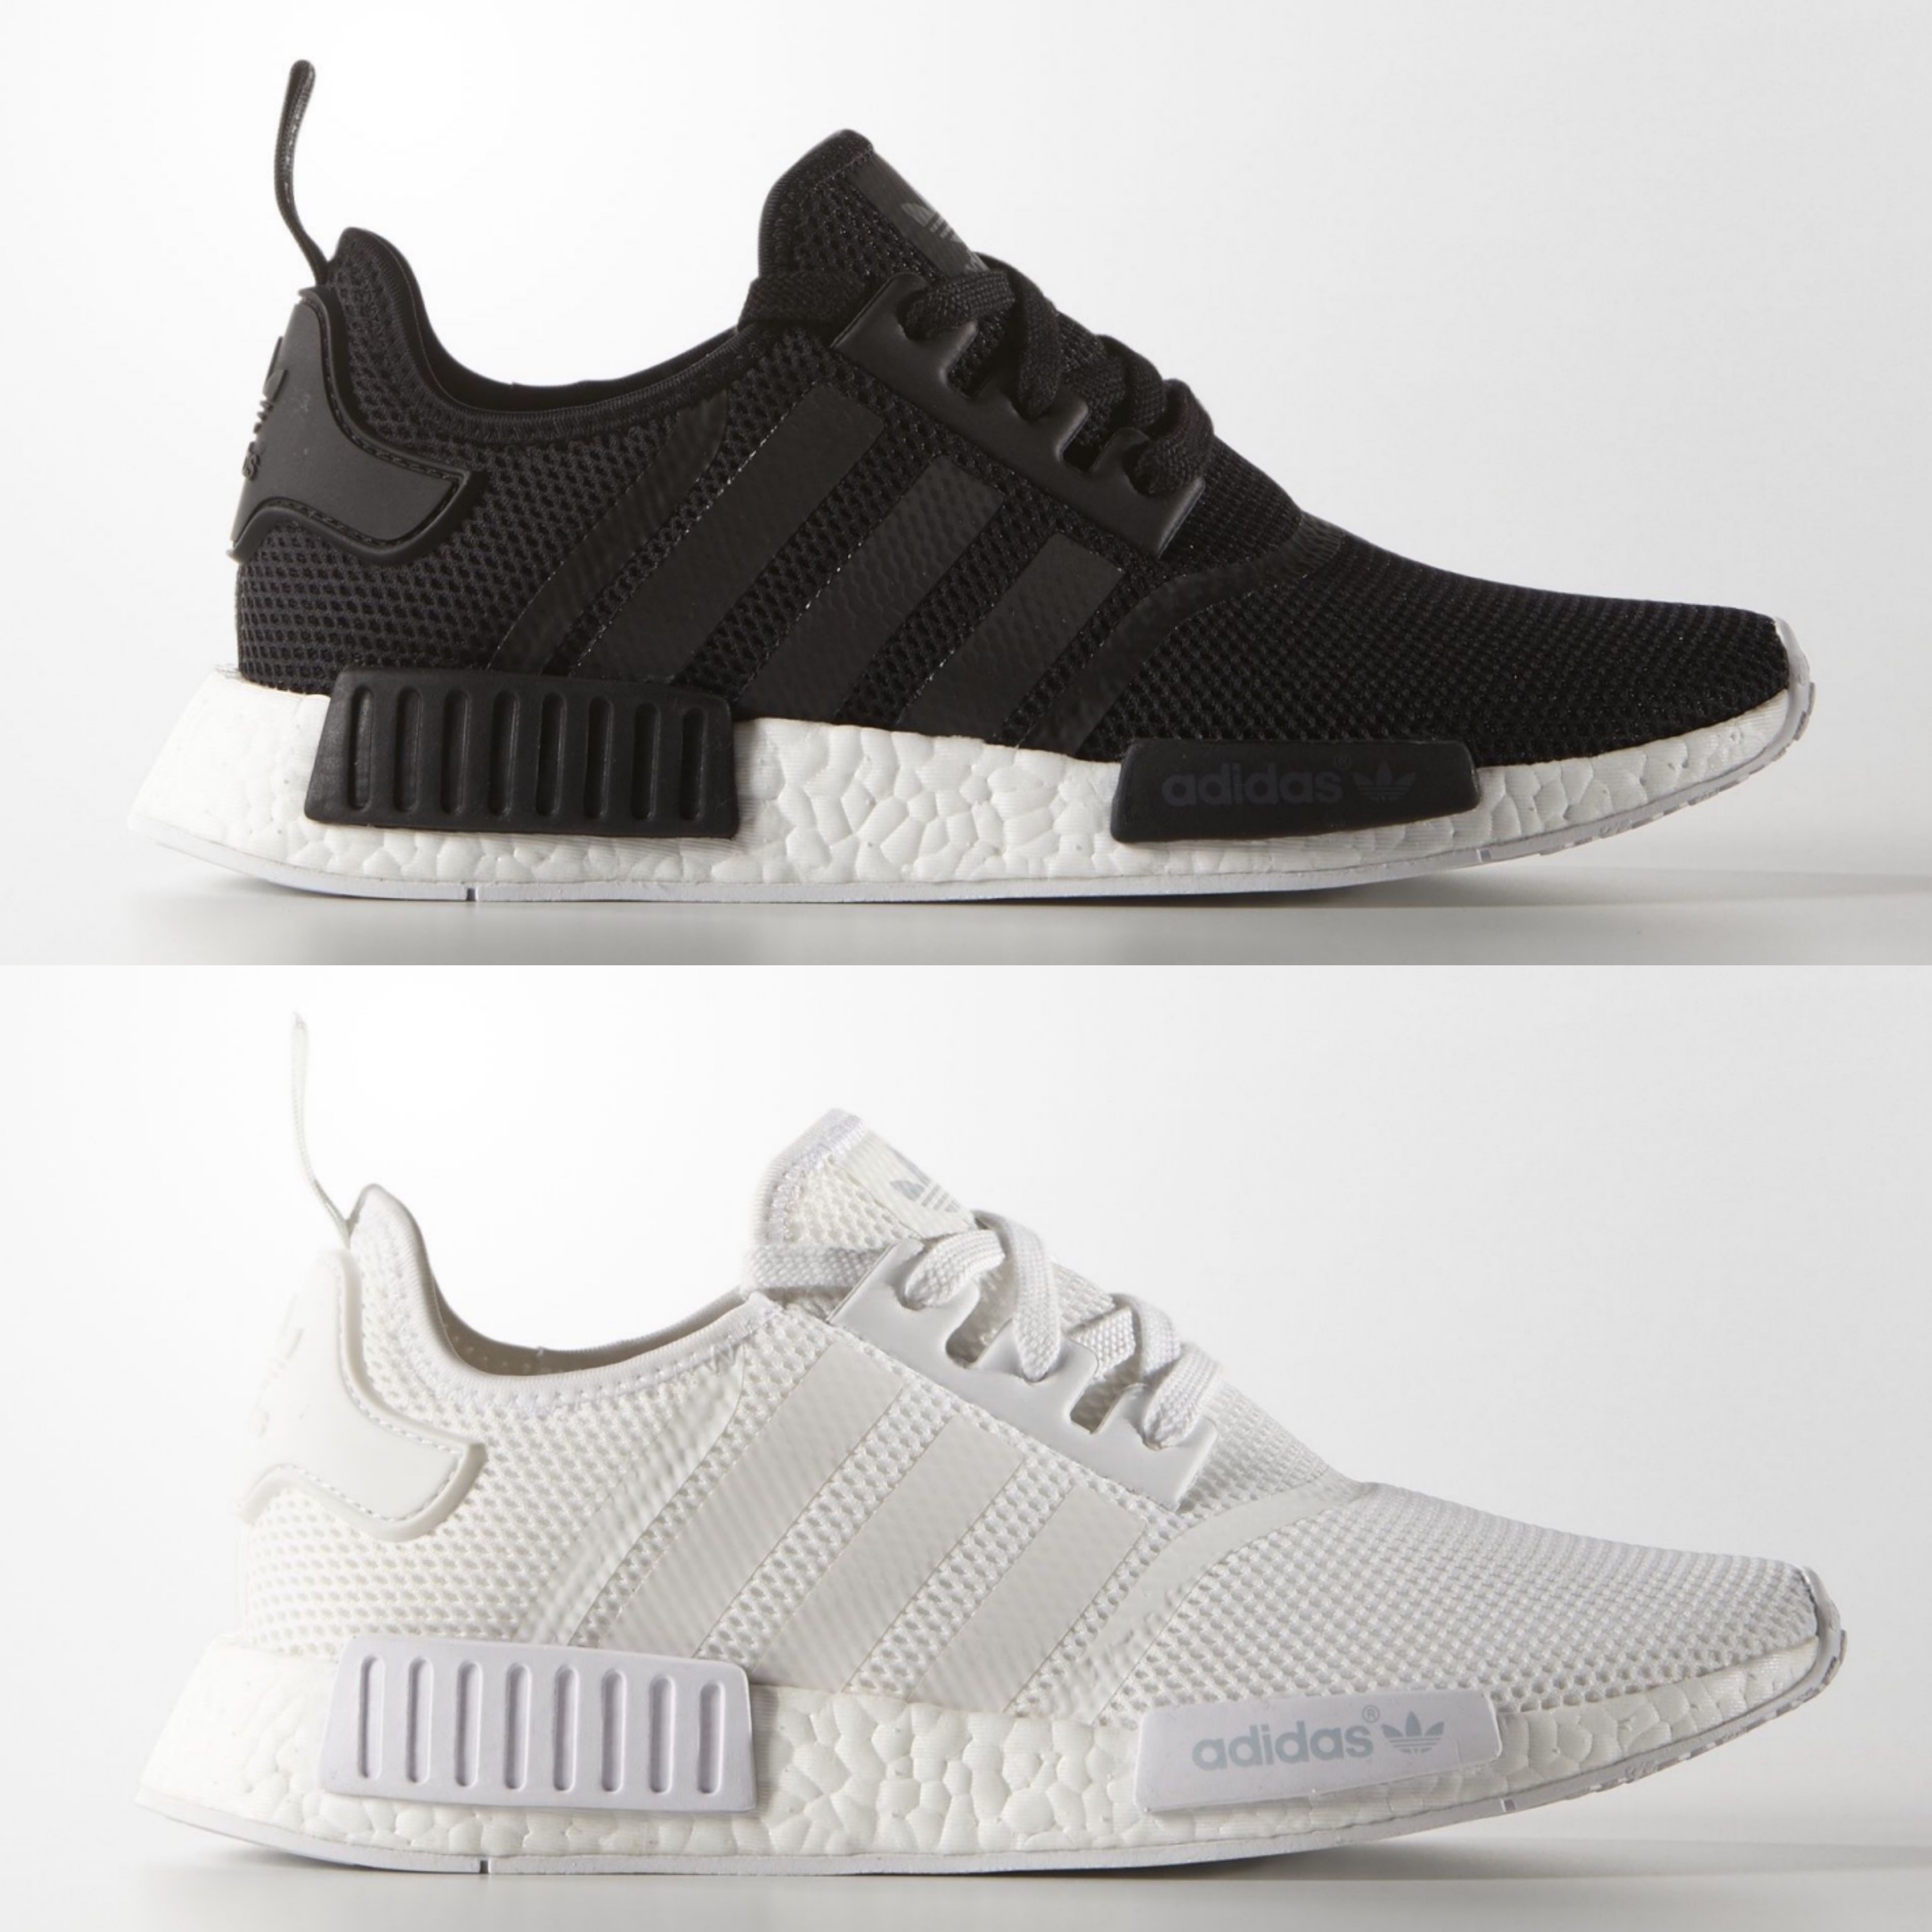 Nmd r1 base green core black white Men